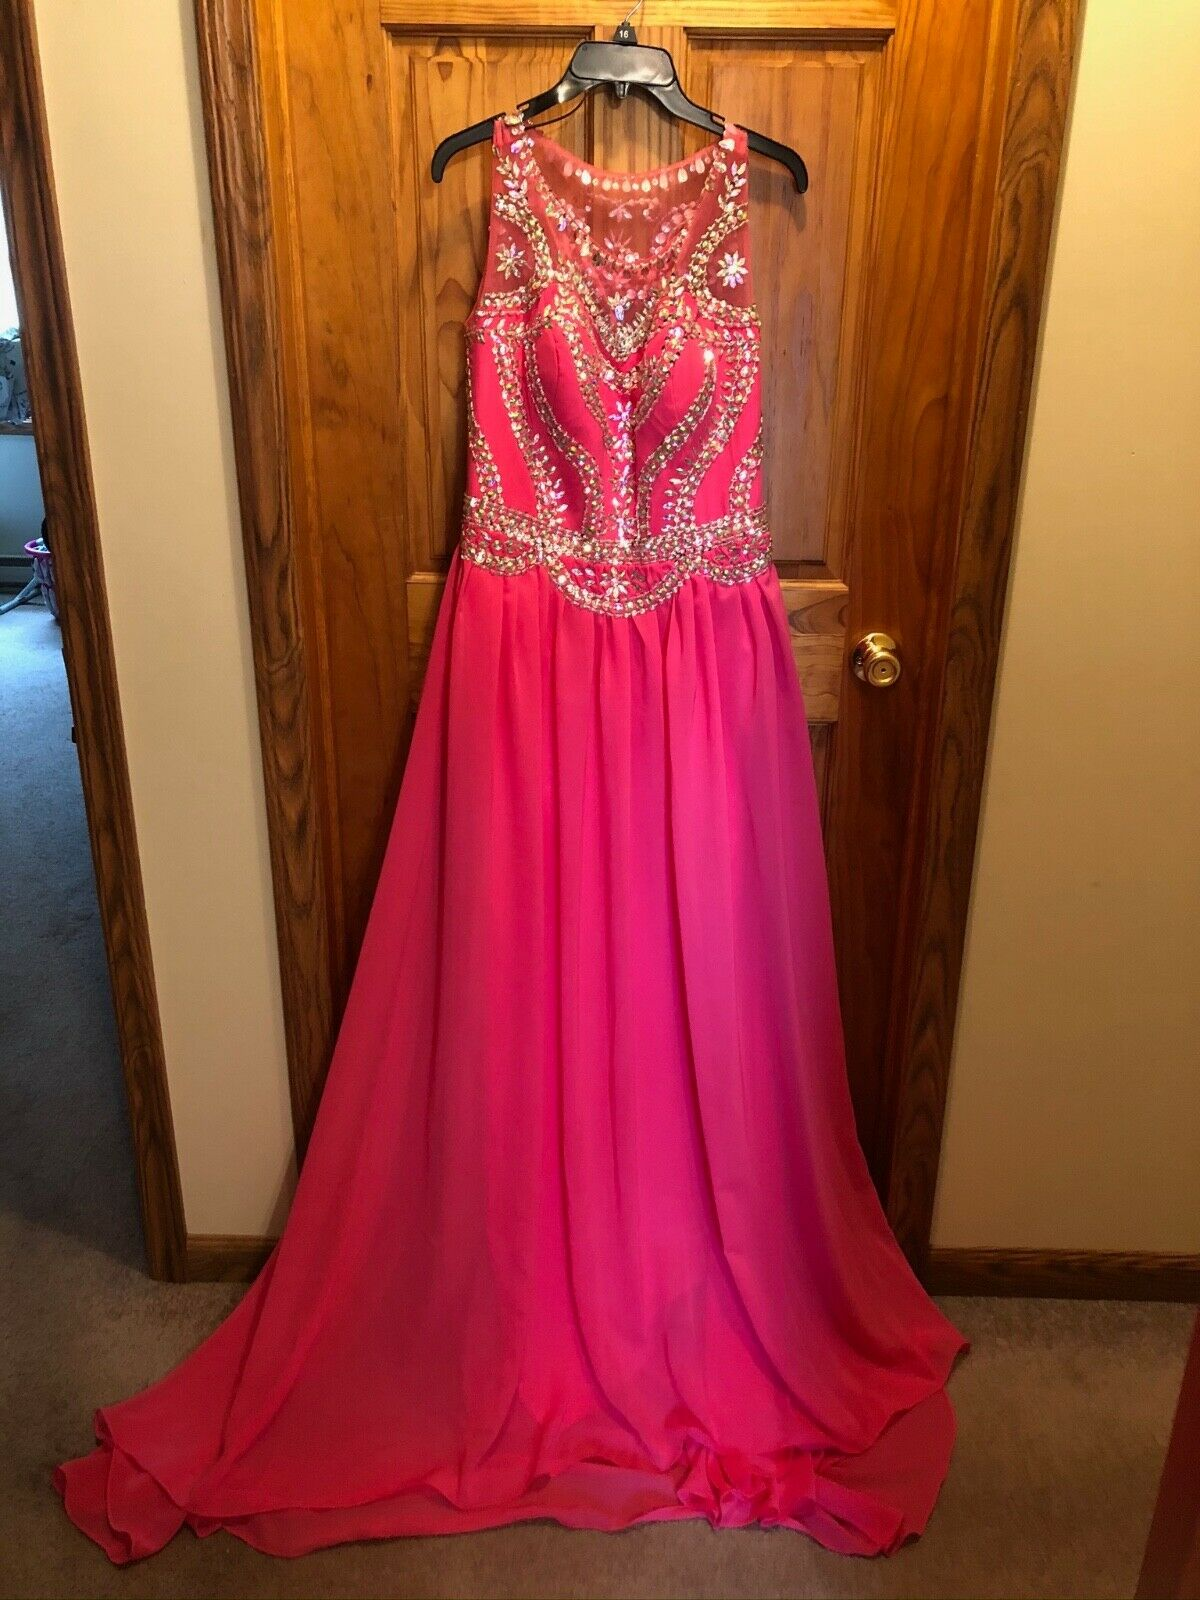 *NEW* Ada Bridal - Pink Gown w/Lots of Bling & Sparkle - Small Train - Size 16